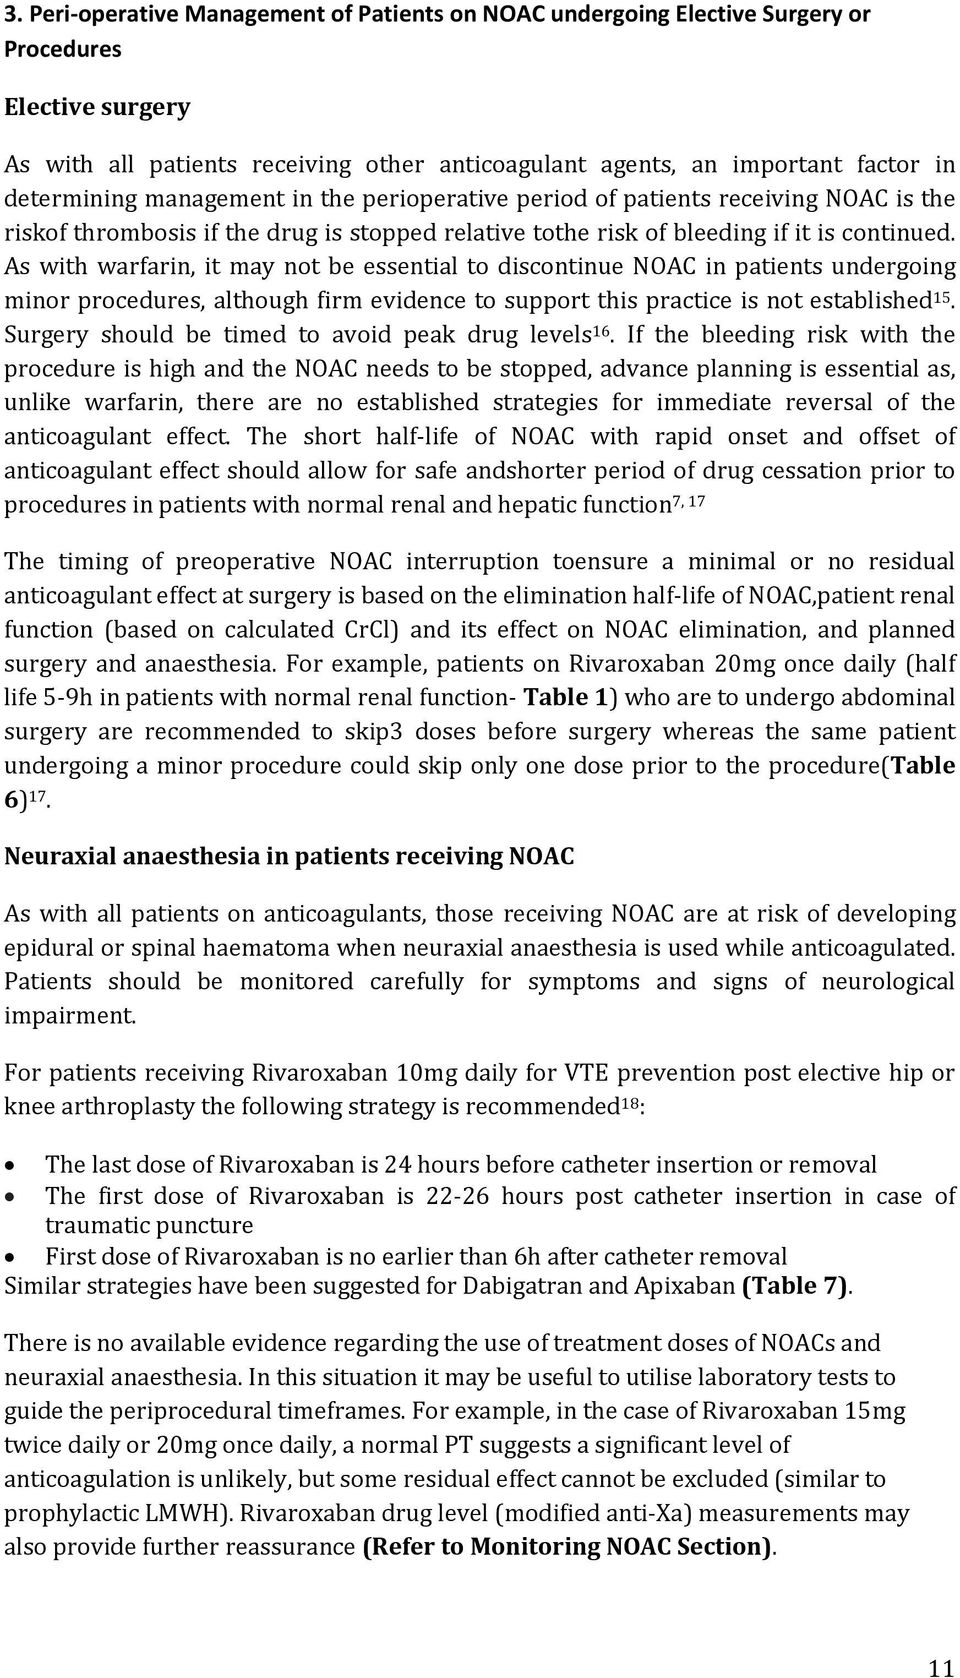 As with warfarin, it may not be essential to discontinue NOAC in patients undergoing minor procedures, although firm evidence to support this practice is not established 15.